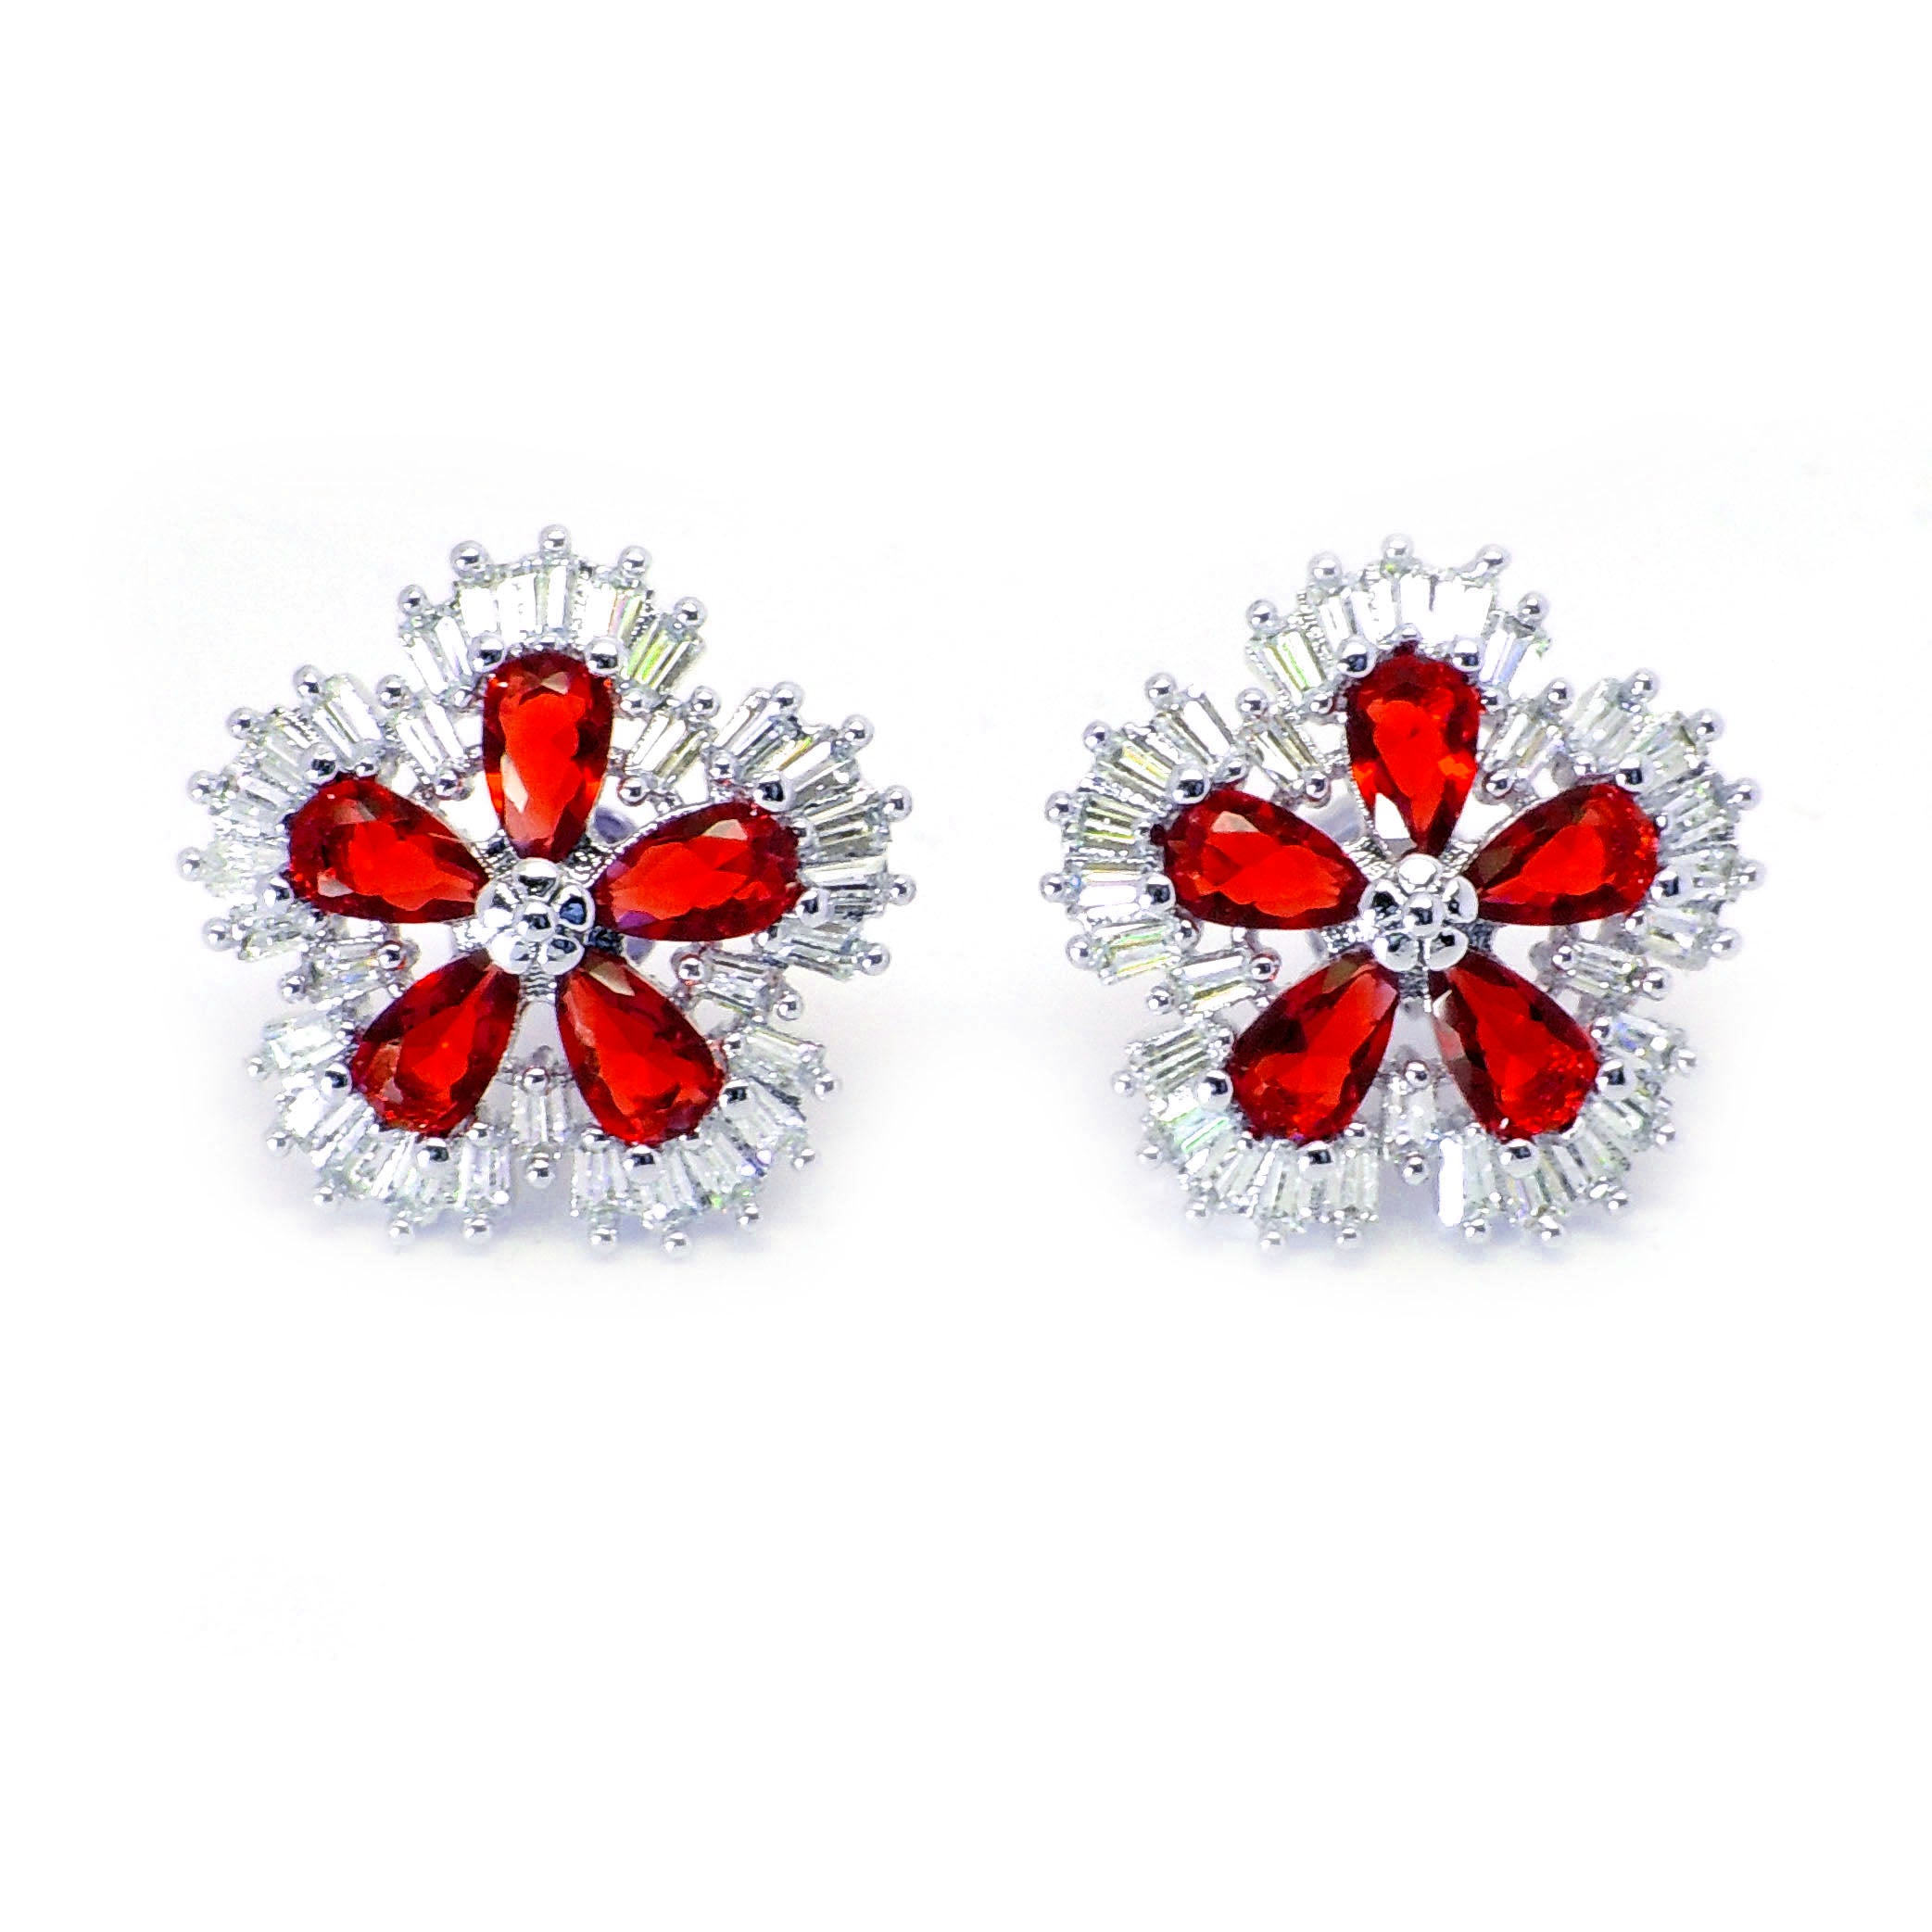 Camran Green or Red CZ Stud Earrings Ginger Lyne Collection